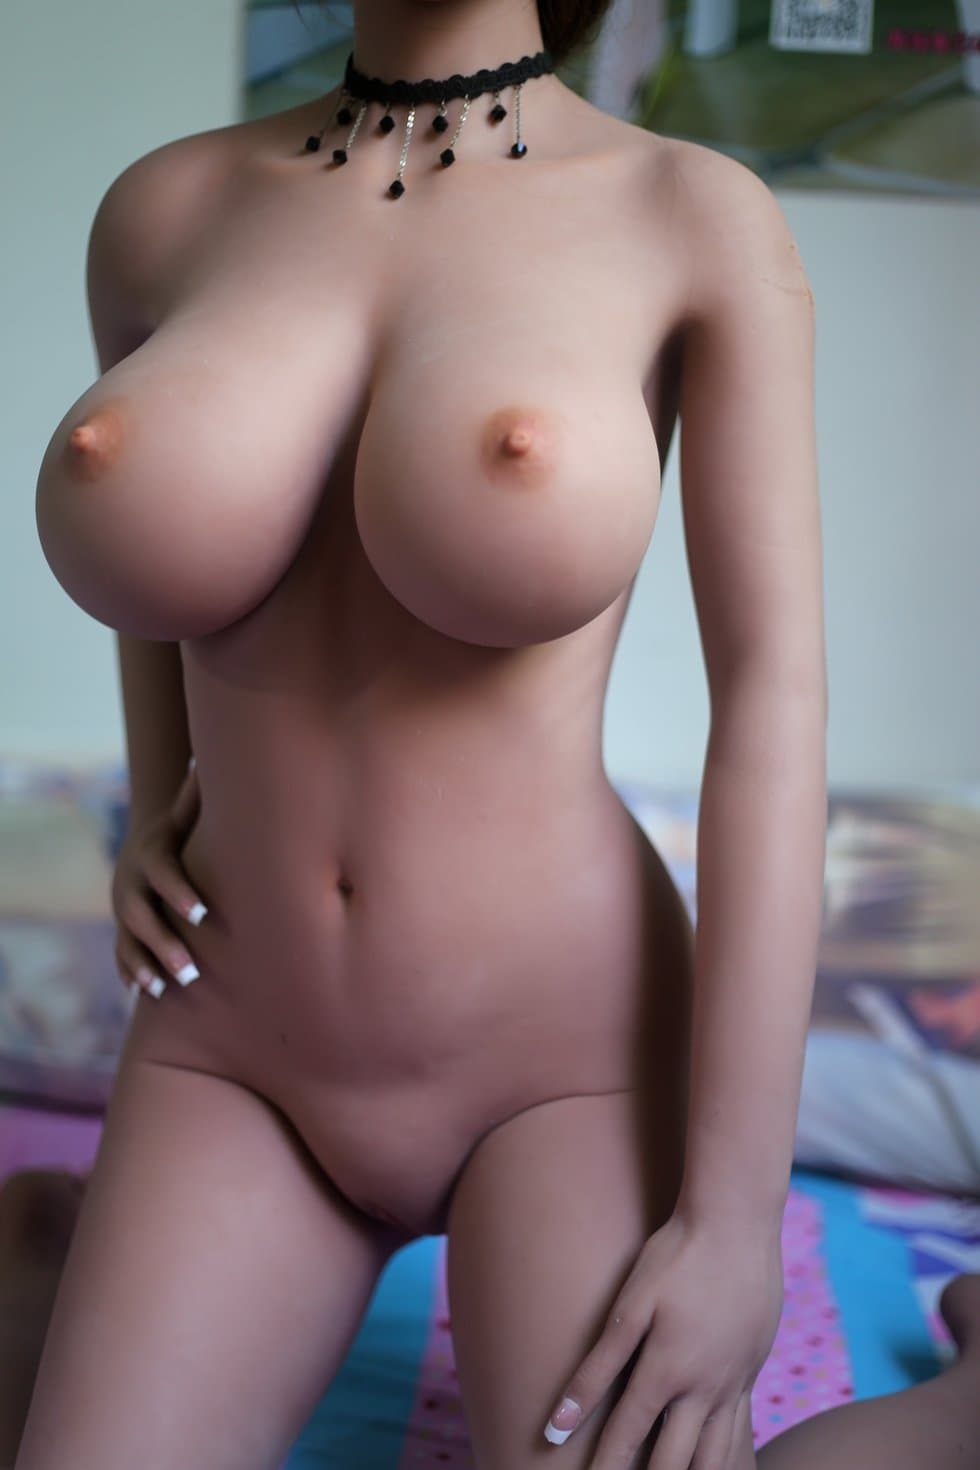 megon 161cm brown hair big boobs athletic tpe wm sex doll(10)